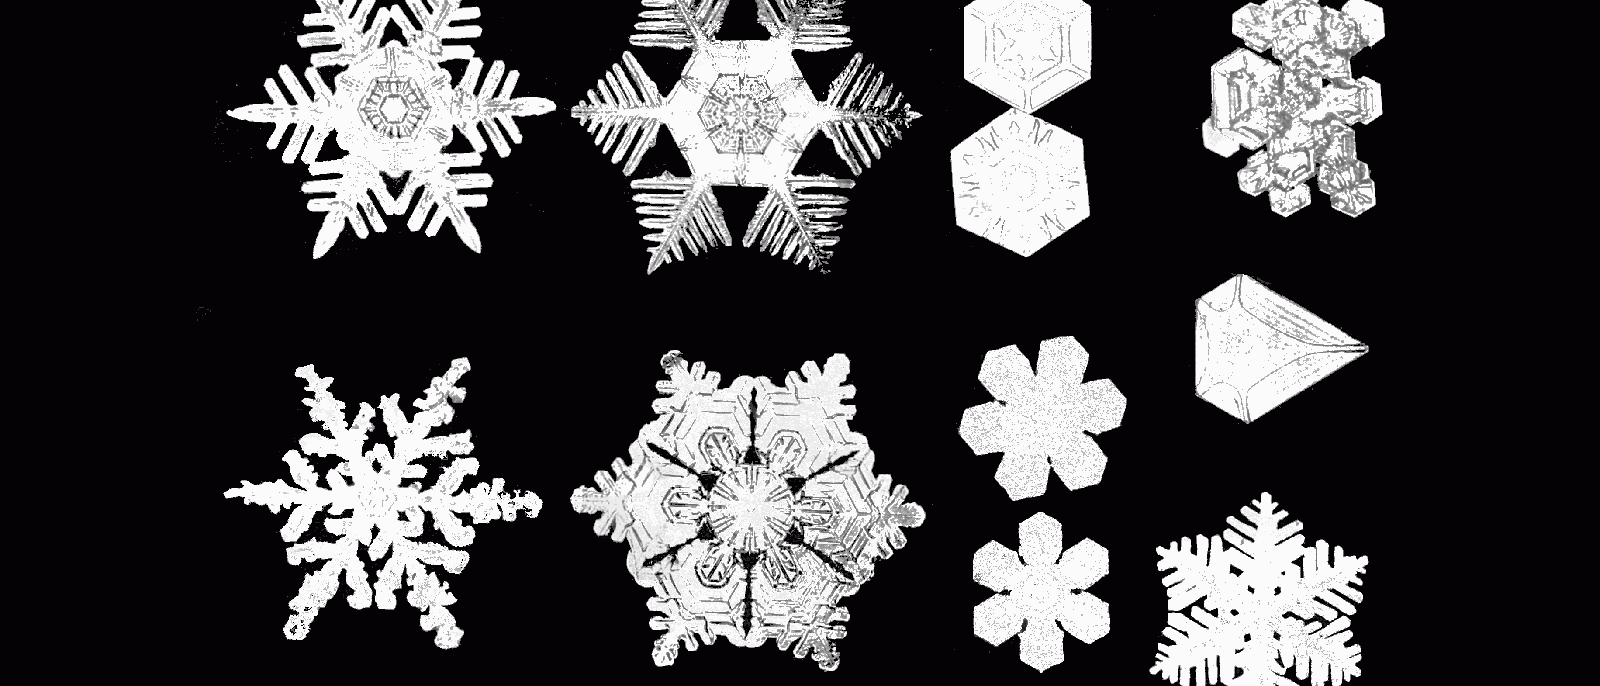 Snowflakes symbols of individual perfection aleph biocorpaavc Images